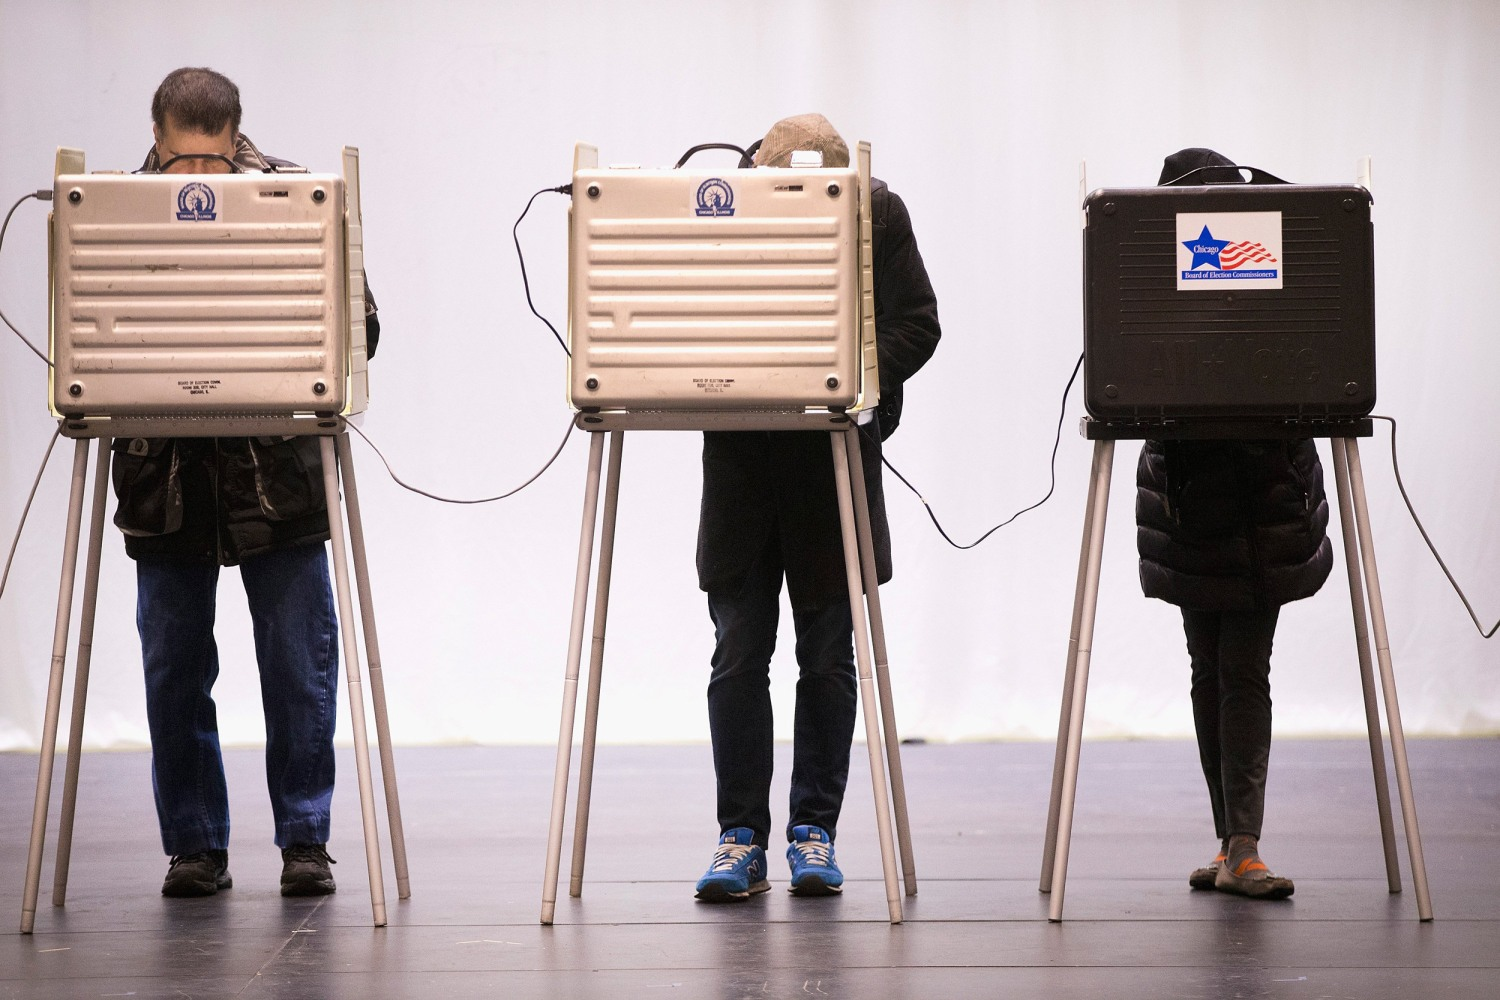 Image Voters Go To The Polls In Illinois Presidential Primary